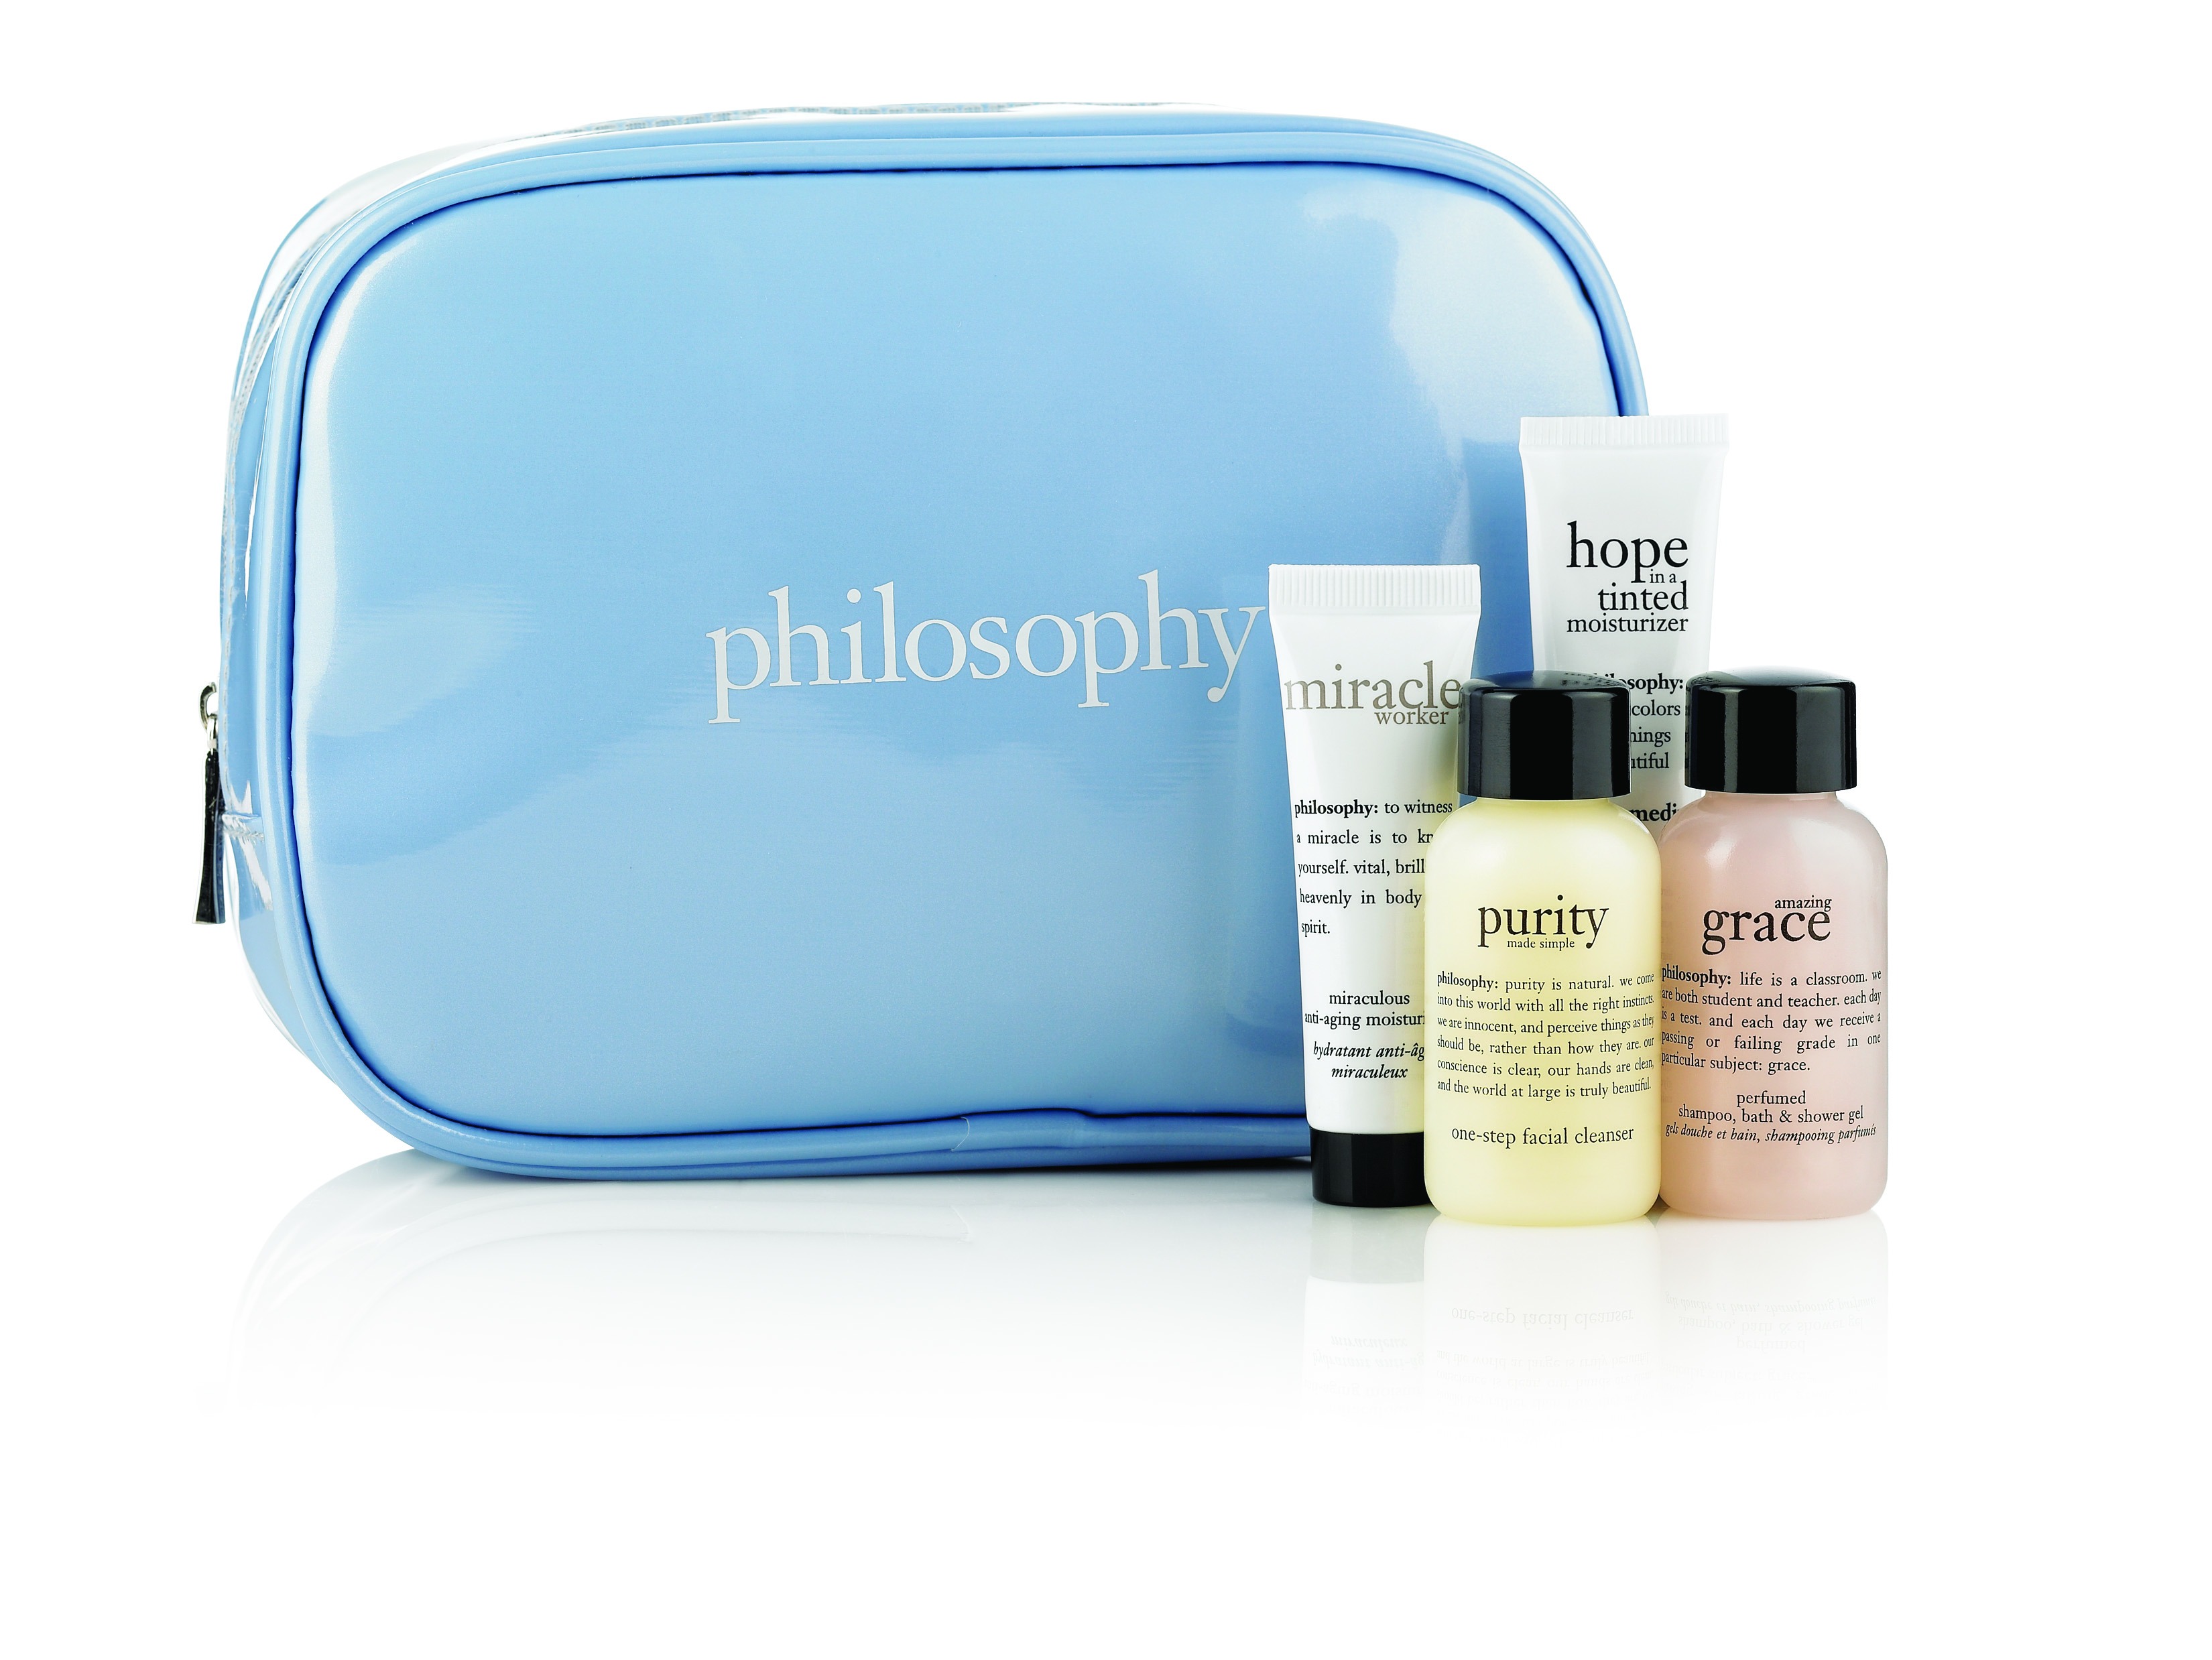 philosophy essay purchase philosophy kit for beautybar images guru philosophy kit for beautybar images guru